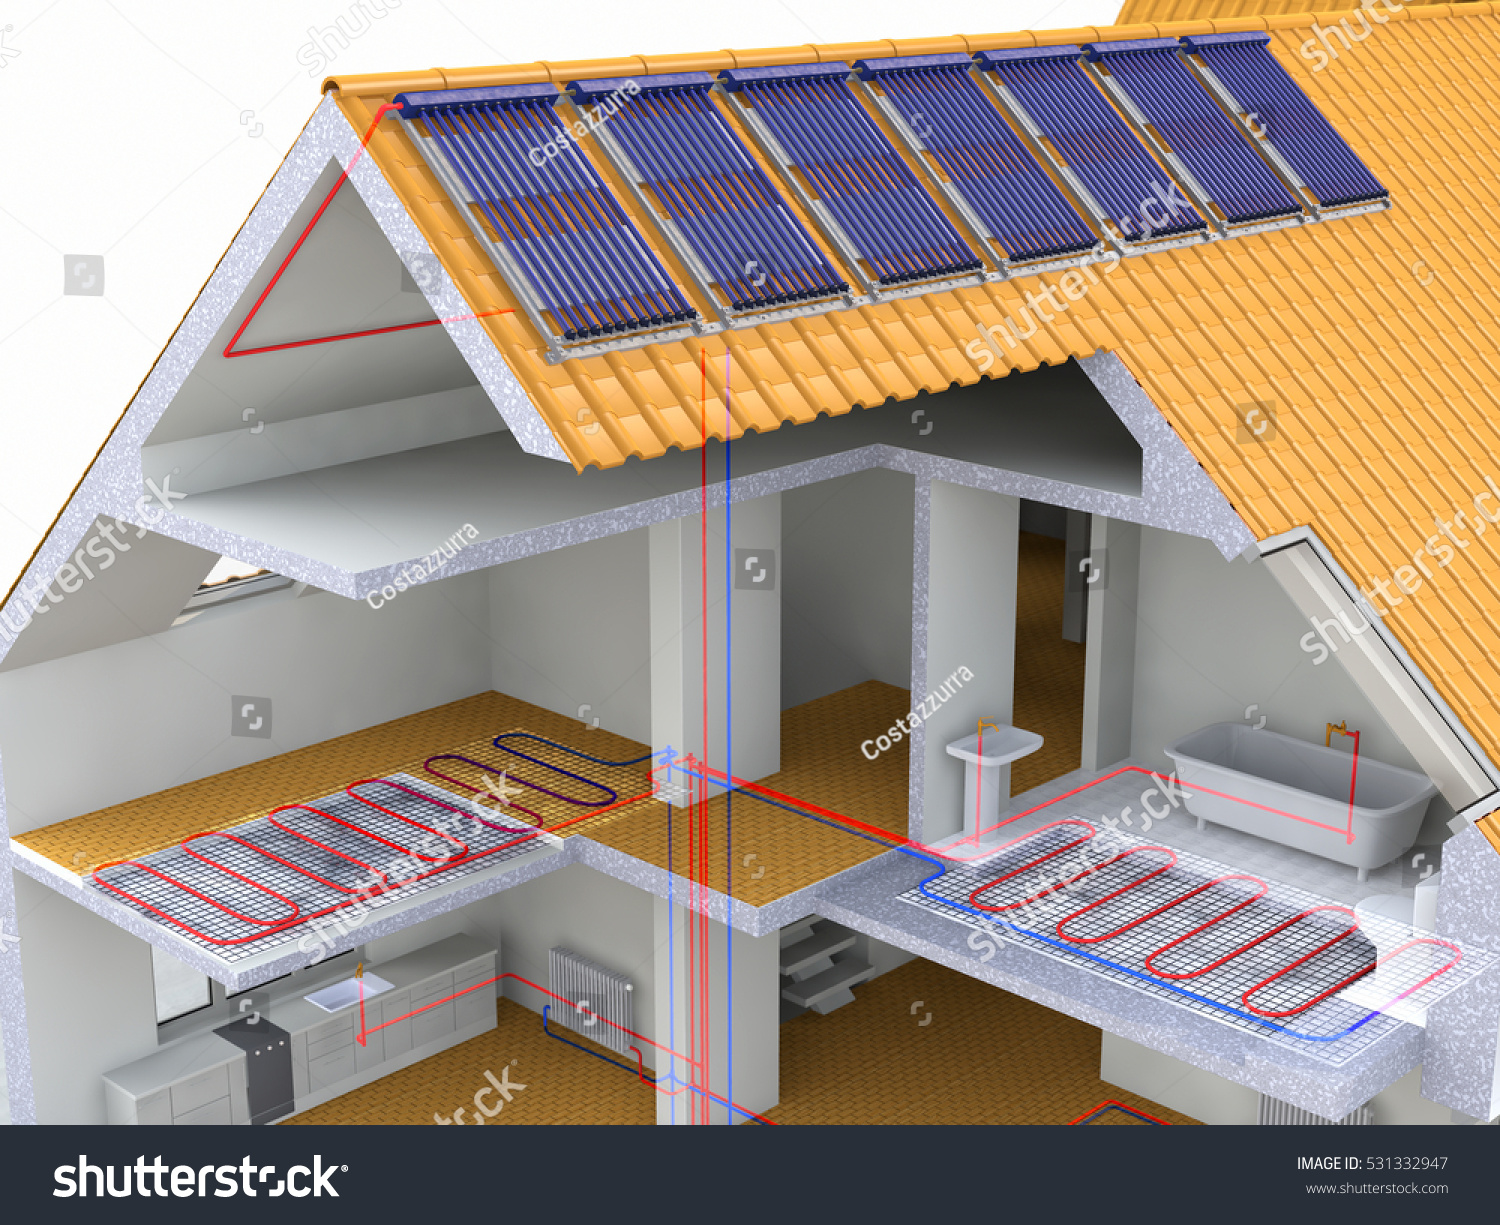 Alternative heated house solar panels heating stock for Heating systems for houses